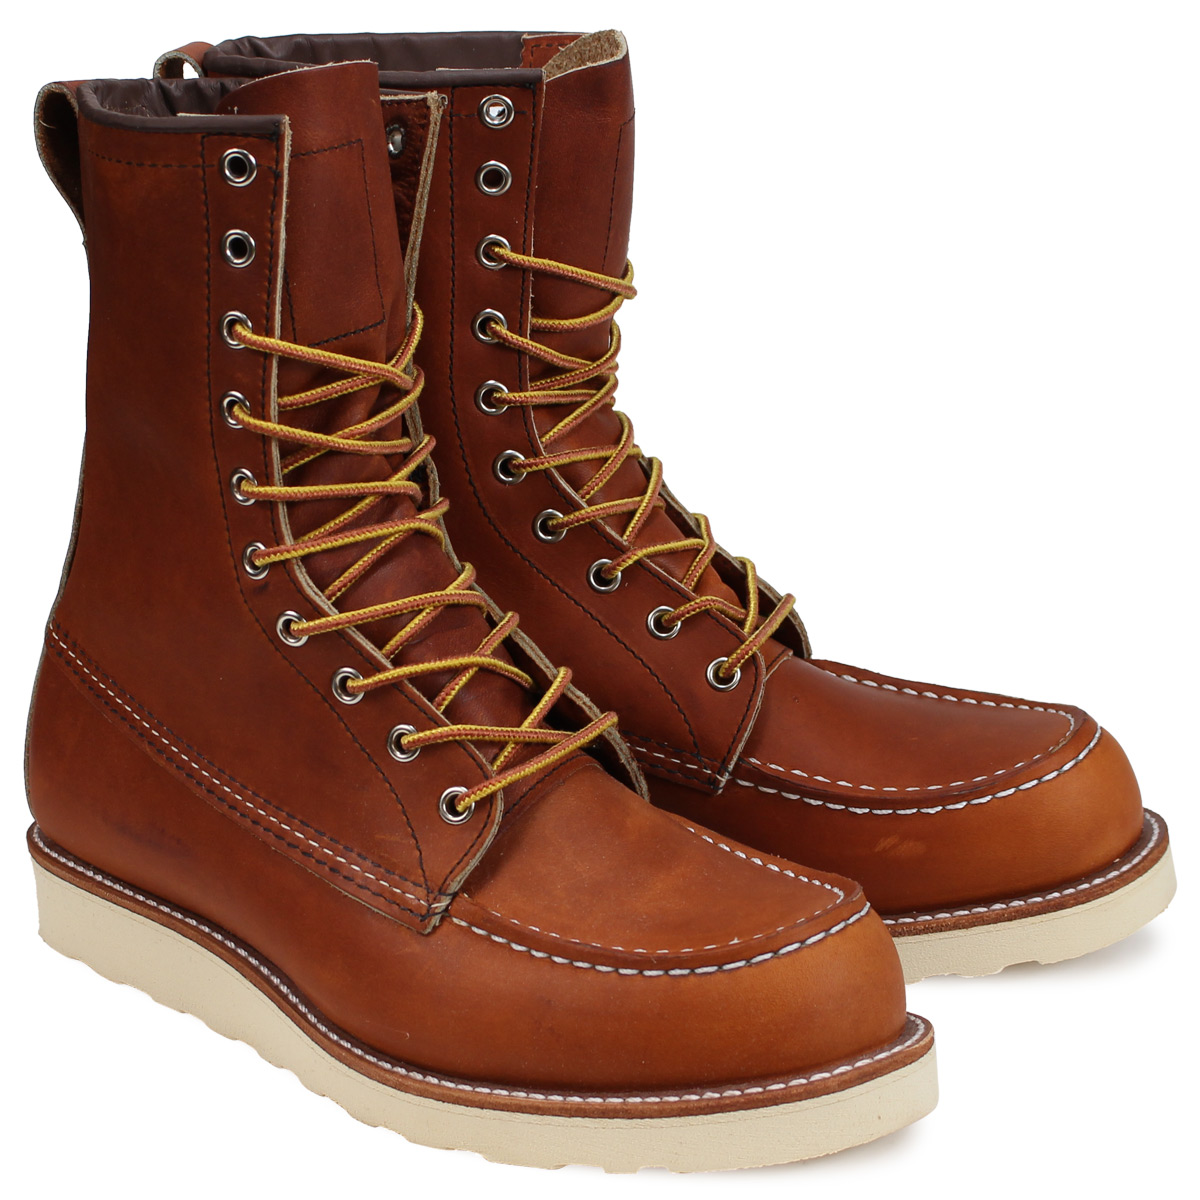 1880a6503aa RED WING 8INCH CLASSIC MOC red wing boots Irish setter classical music mock  D Wise 877 men's Lady's